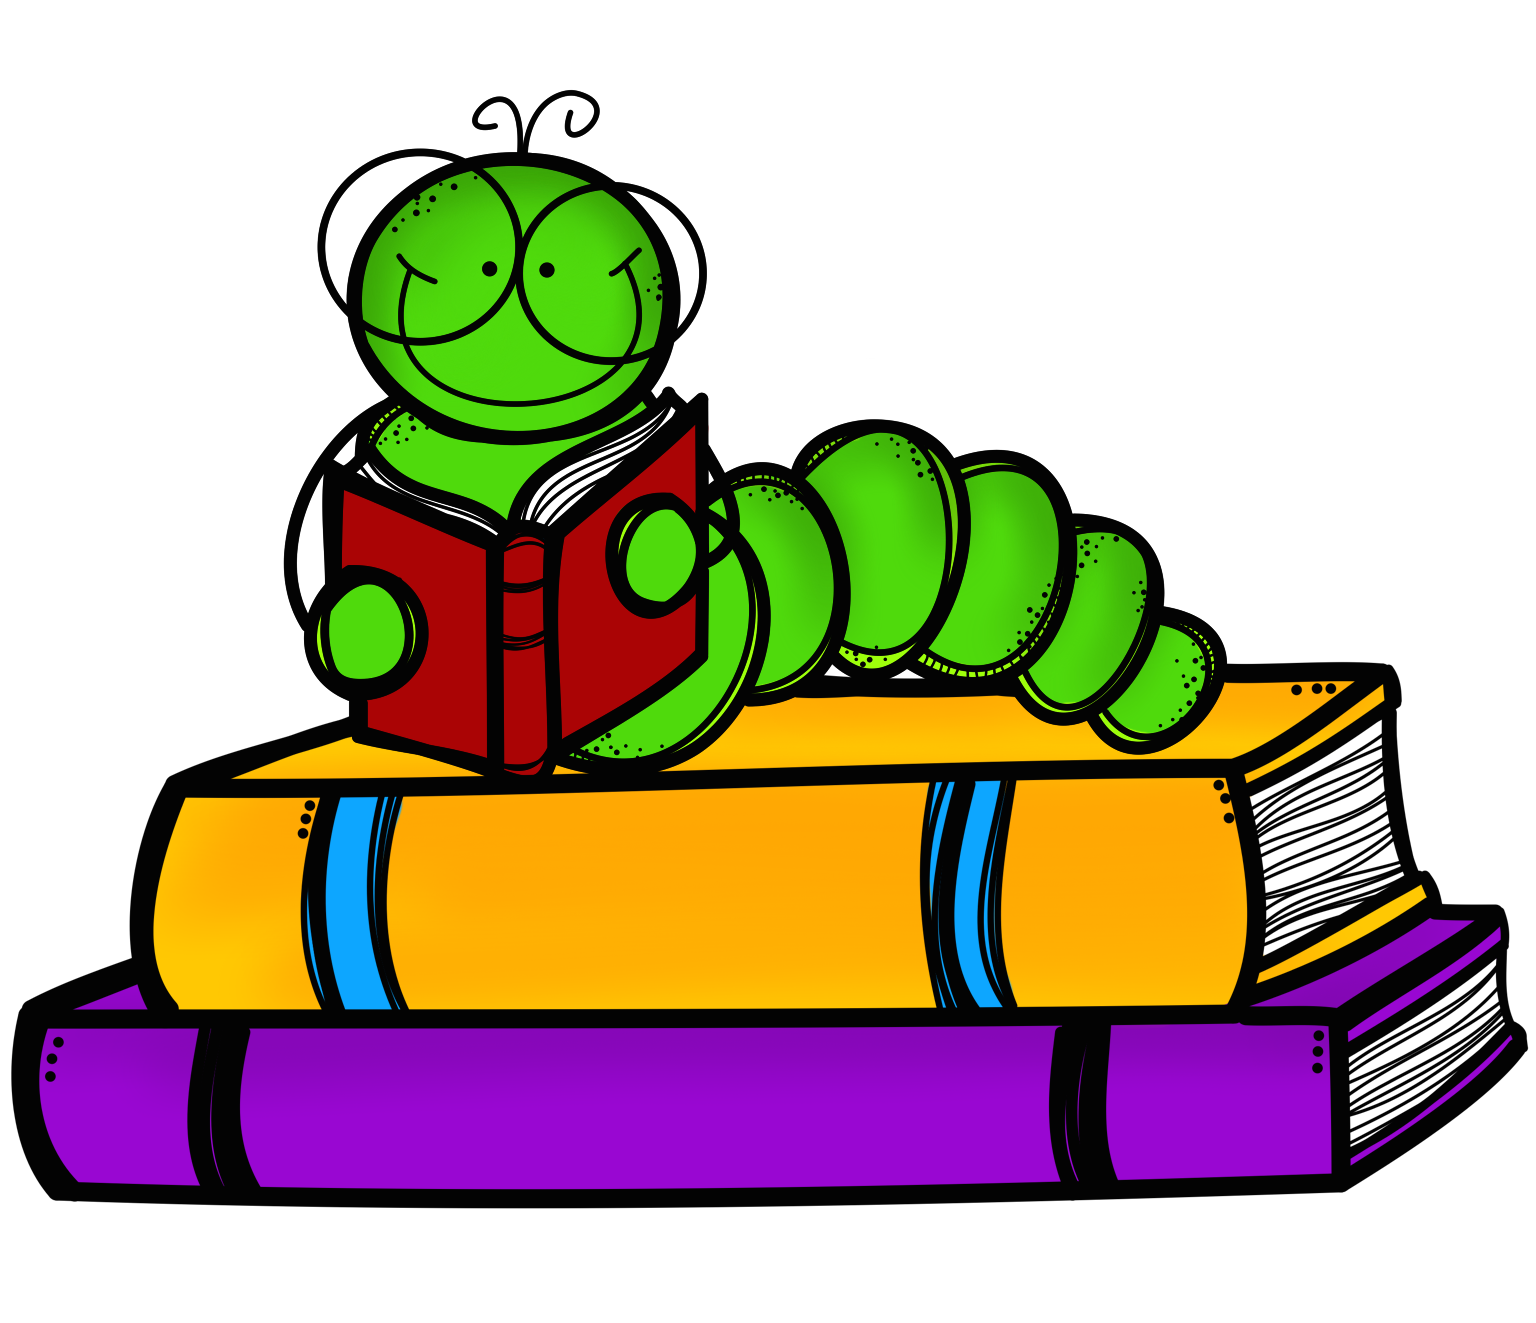 Librarian apple clipart banner free 5th Annual Used Book Swap – Welcome to the Newbury Elementary School ... banner free